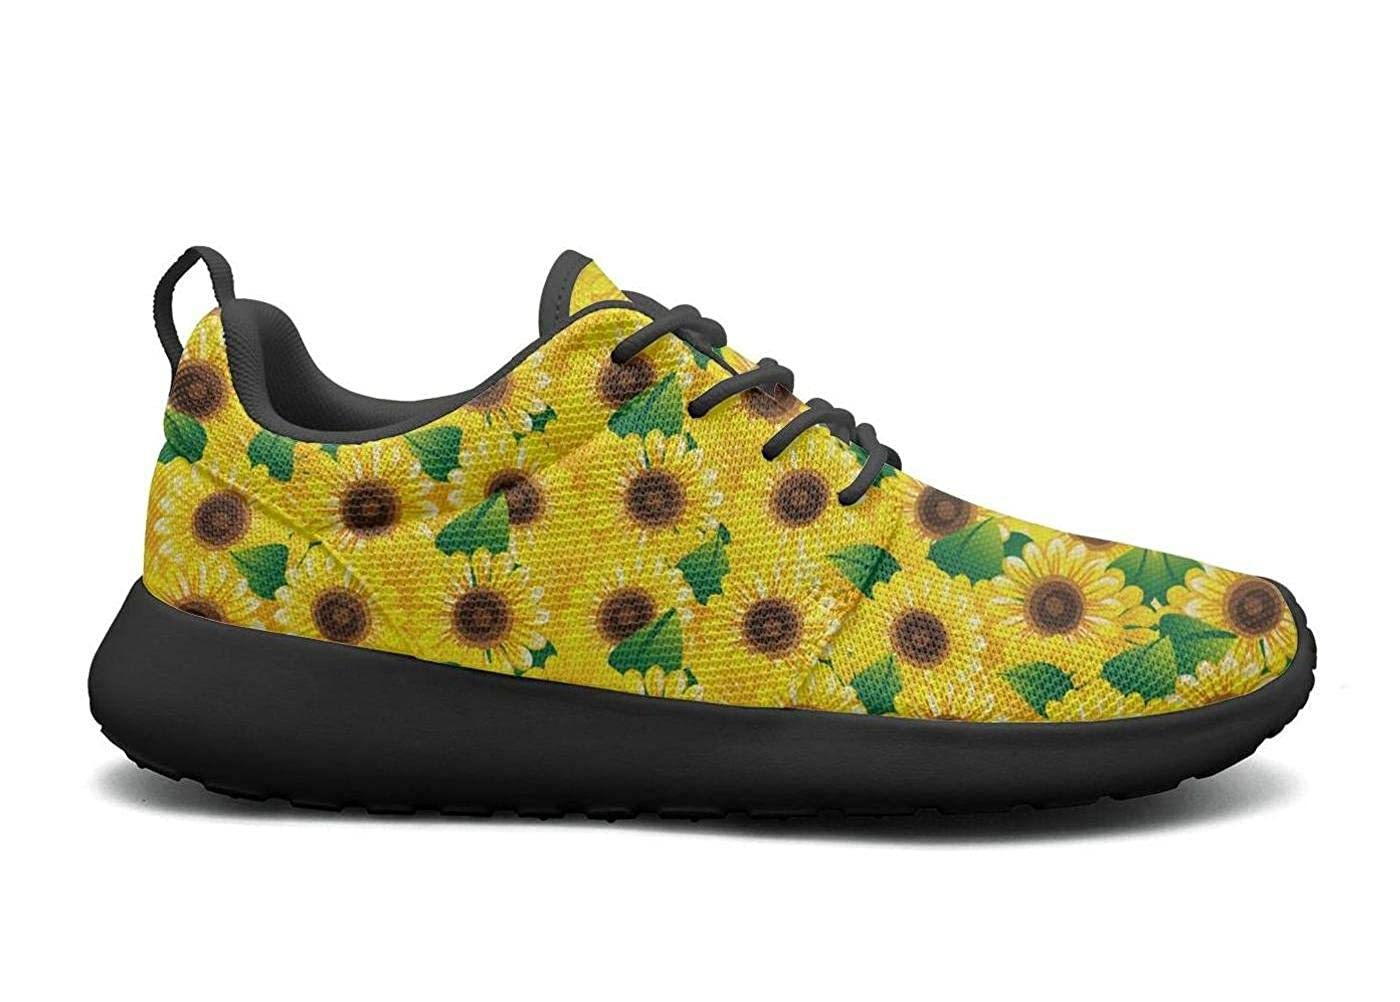 CHALi99 Casual Womens Lightweight Mesh Shoes Rustic Sunflower Decor Sneakers Trail Running Lace-Up